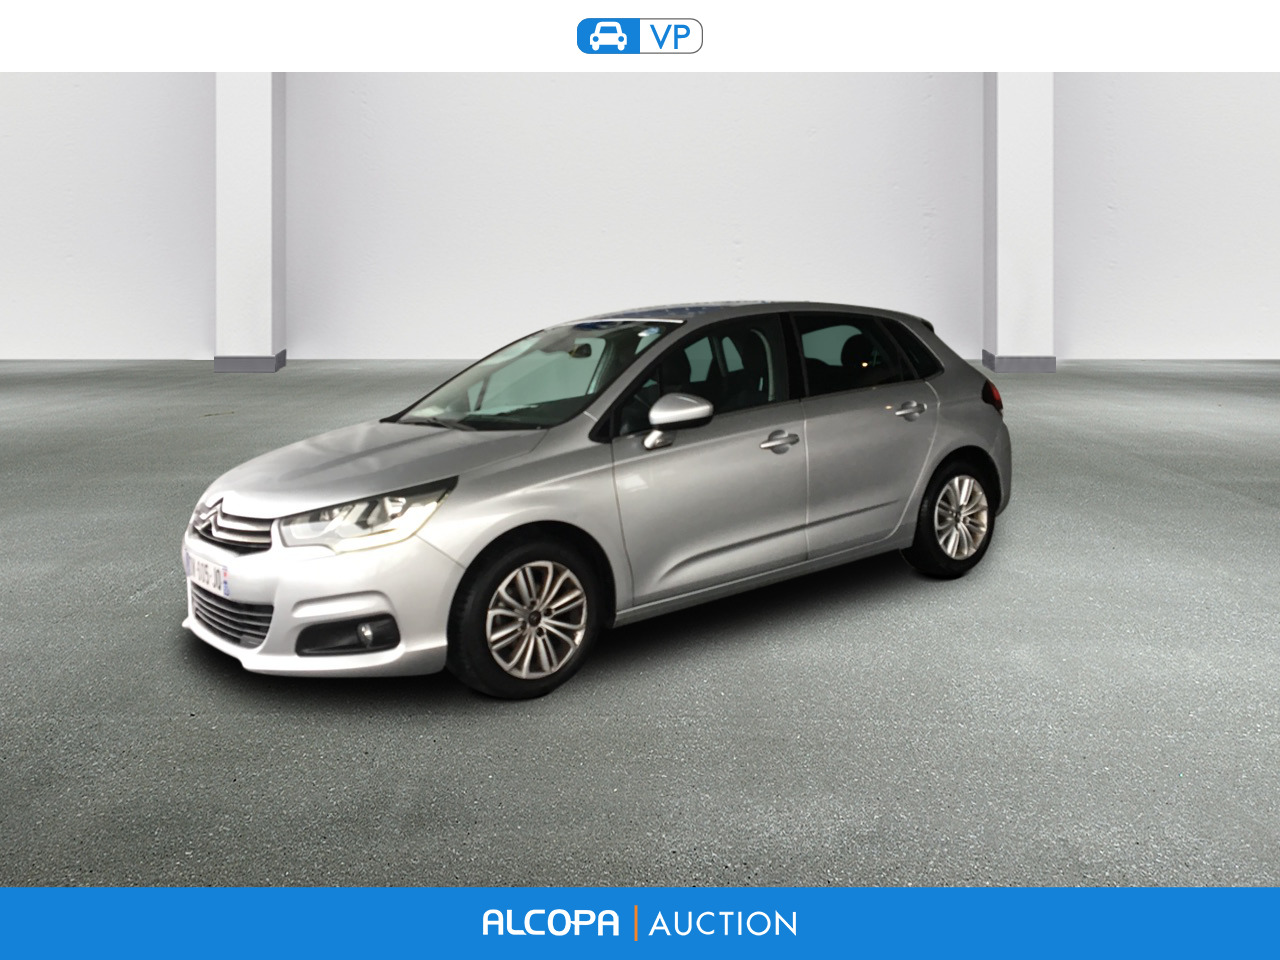 citroen c4 business blue hdi 100 s s bmv 86g millenium alcopa auction. Black Bedroom Furniture Sets. Home Design Ideas